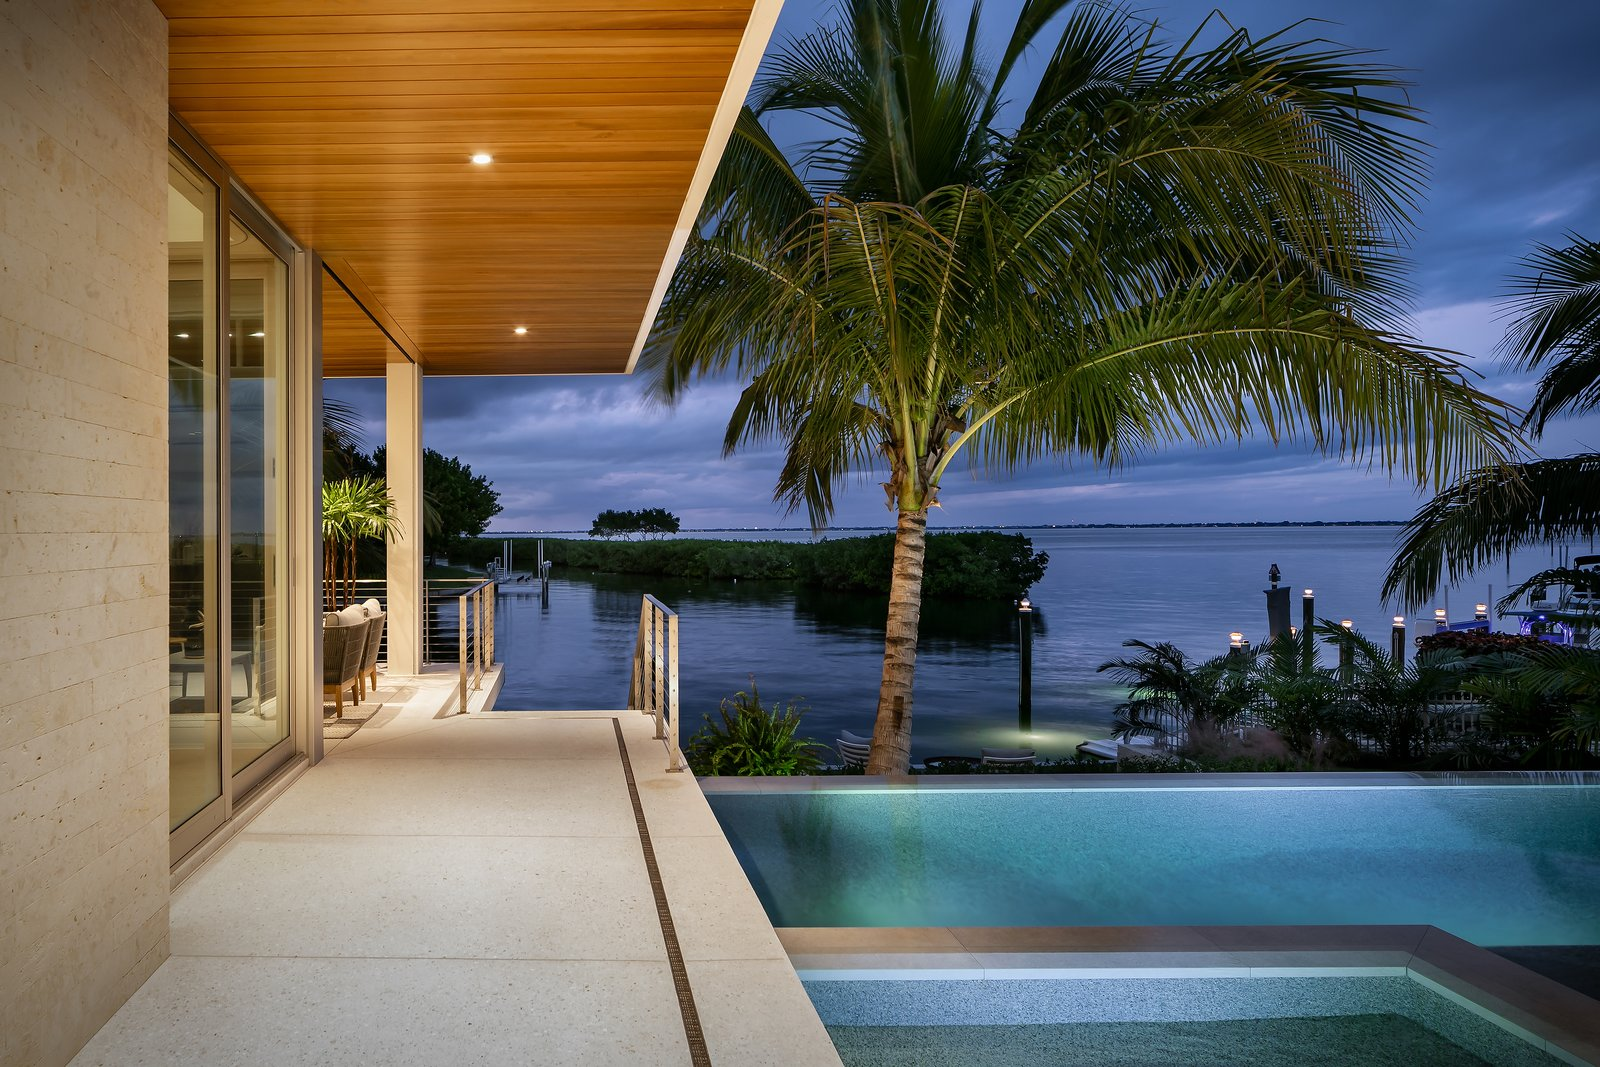 Outdoor, Large Patio, Porch, Deck, Trees, Back Yard, Infinity Pools, Tubs, Shower, Walkways, Wood Patio, Porch, Deck, Large Pools, Tubs, Shower, Hot Tub Pools, Tubs, Shower, Concrete Patio, Porch, Deck, Stone Fences, Wall, Swimming Pools, Tubs, Shower, Horizontal Fences, Wall, and Salt Water Pools, Tubs, Shower  Bayview House by Leader Design Studio